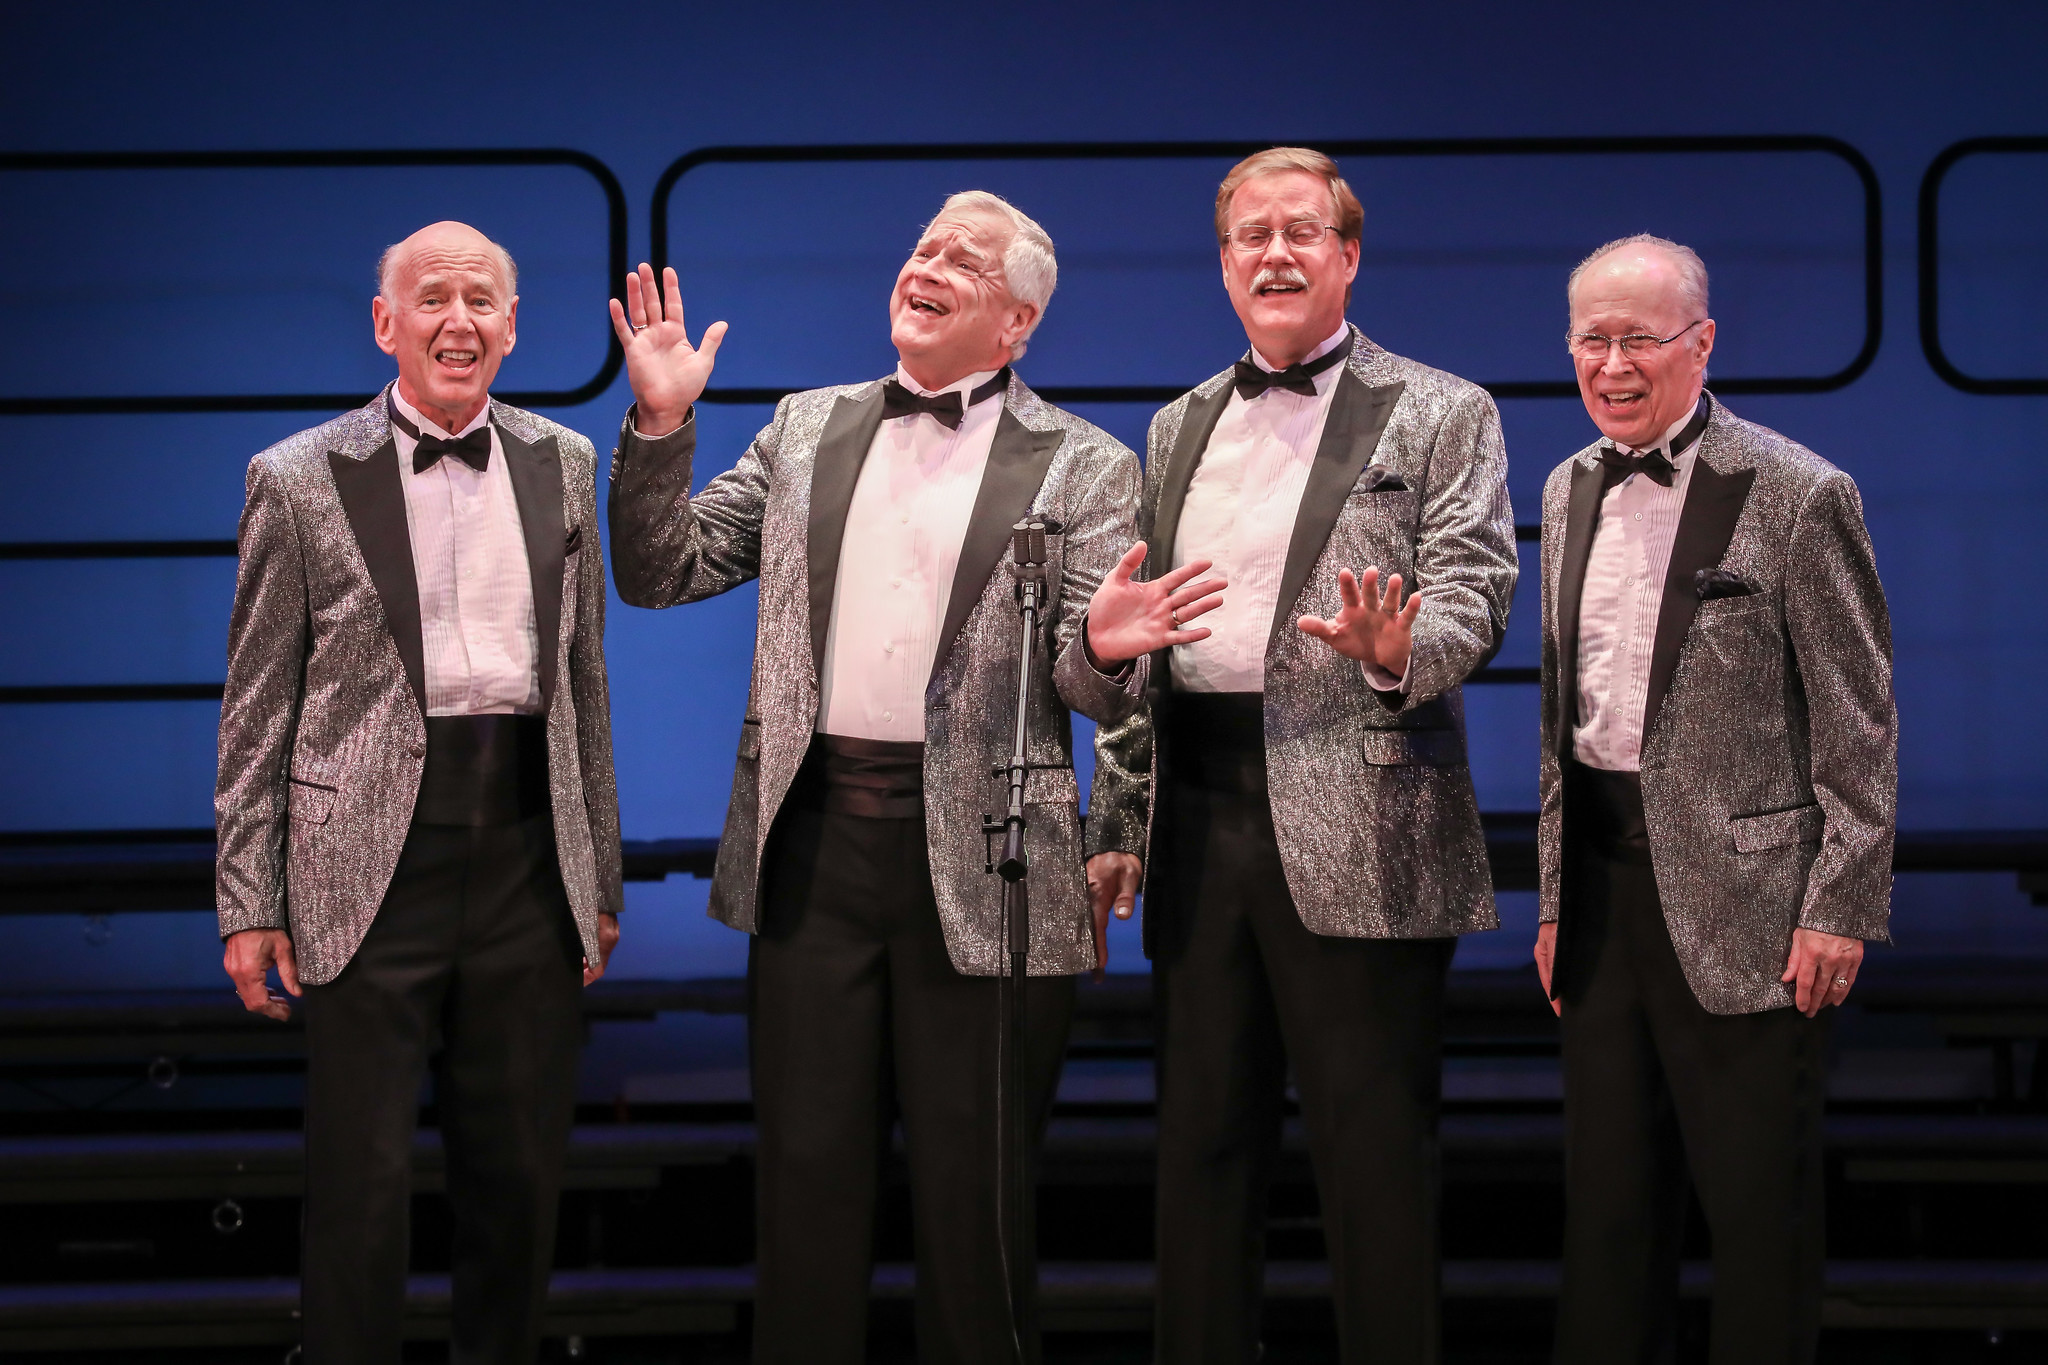 Seniors Quartet Silver Alert performs at Midwinter 2020